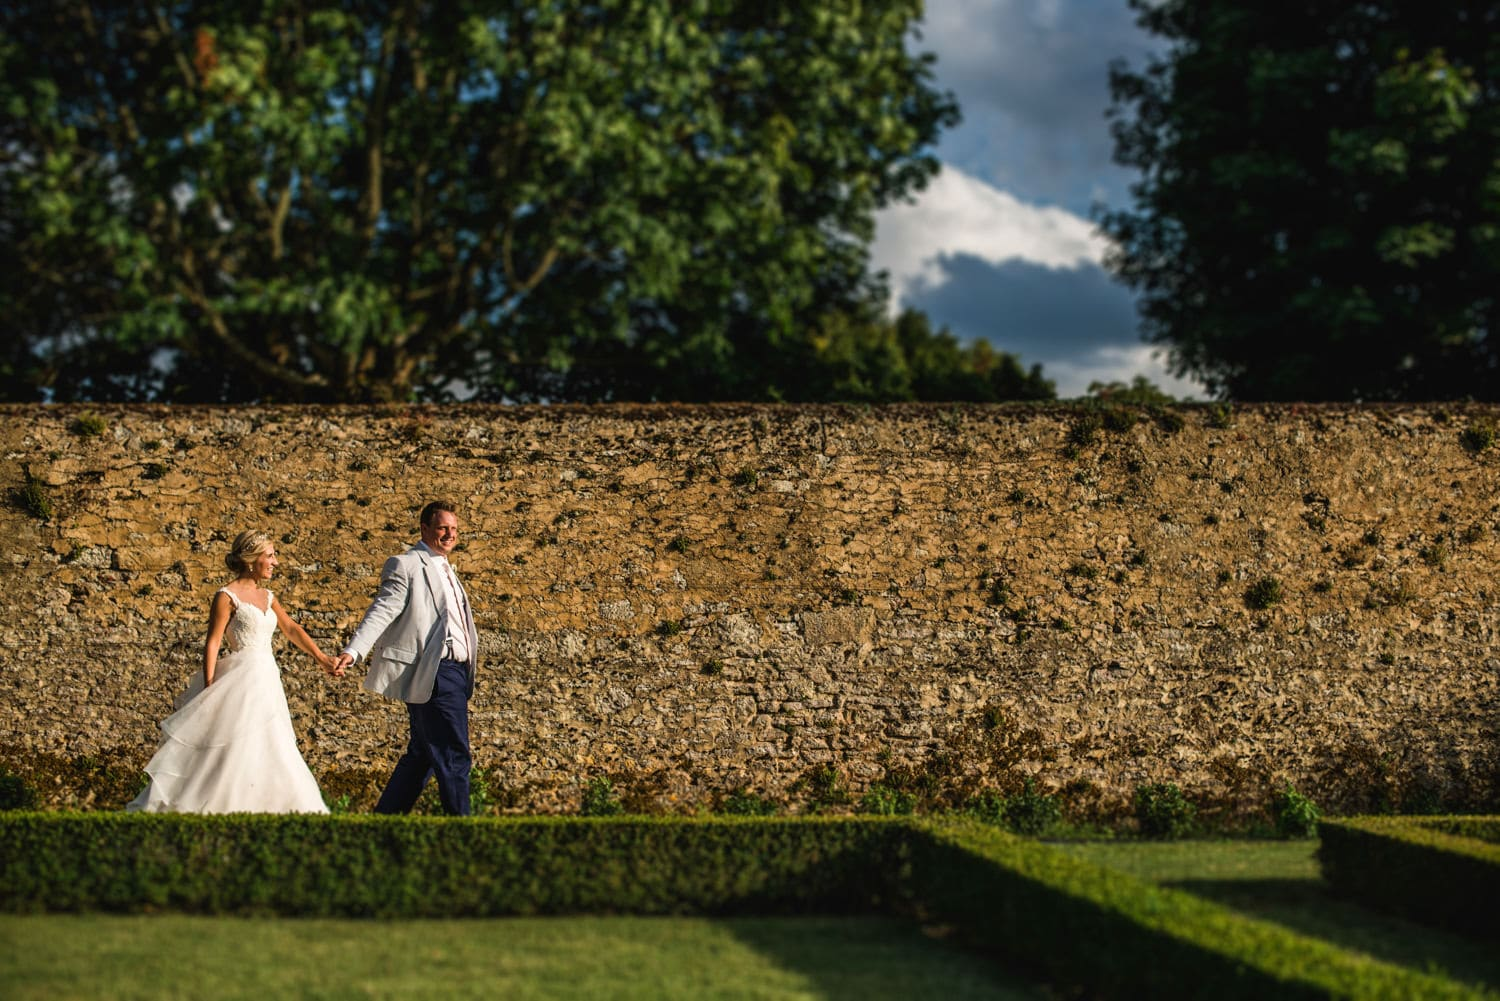 wedding portraits at Chateau de Lacoste